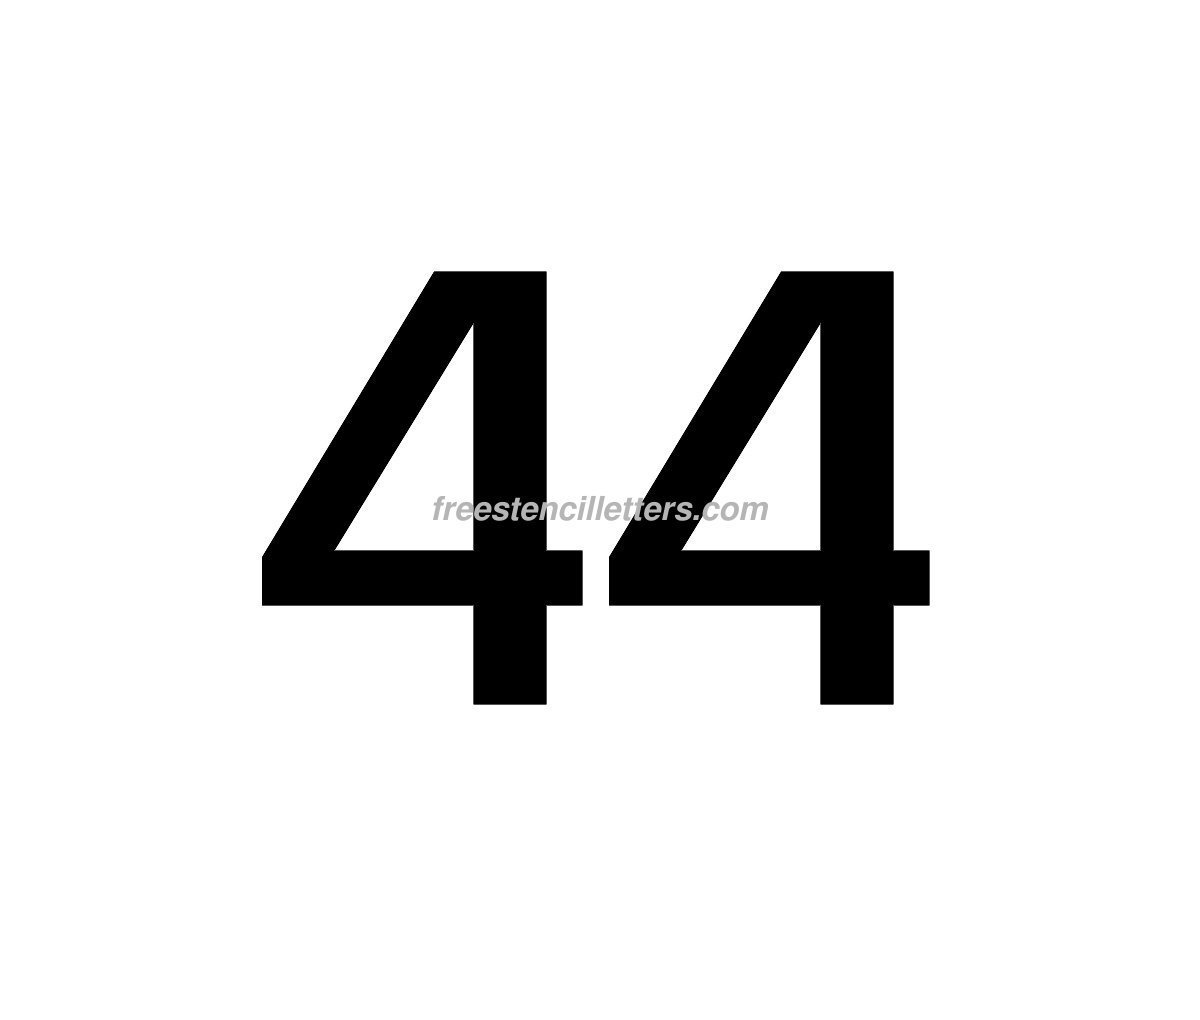 number-44  Inch Letter Template on uppercase stencil, british thermal unit, imperial units, printable block, cubic inch, pounds per square inch, international system of units, template printable, unit of length, square inch, cut out, thousandth of an inch, fluid ounce, old english, stencils printable free, english units, stencils printable krishitha, printable stencil,